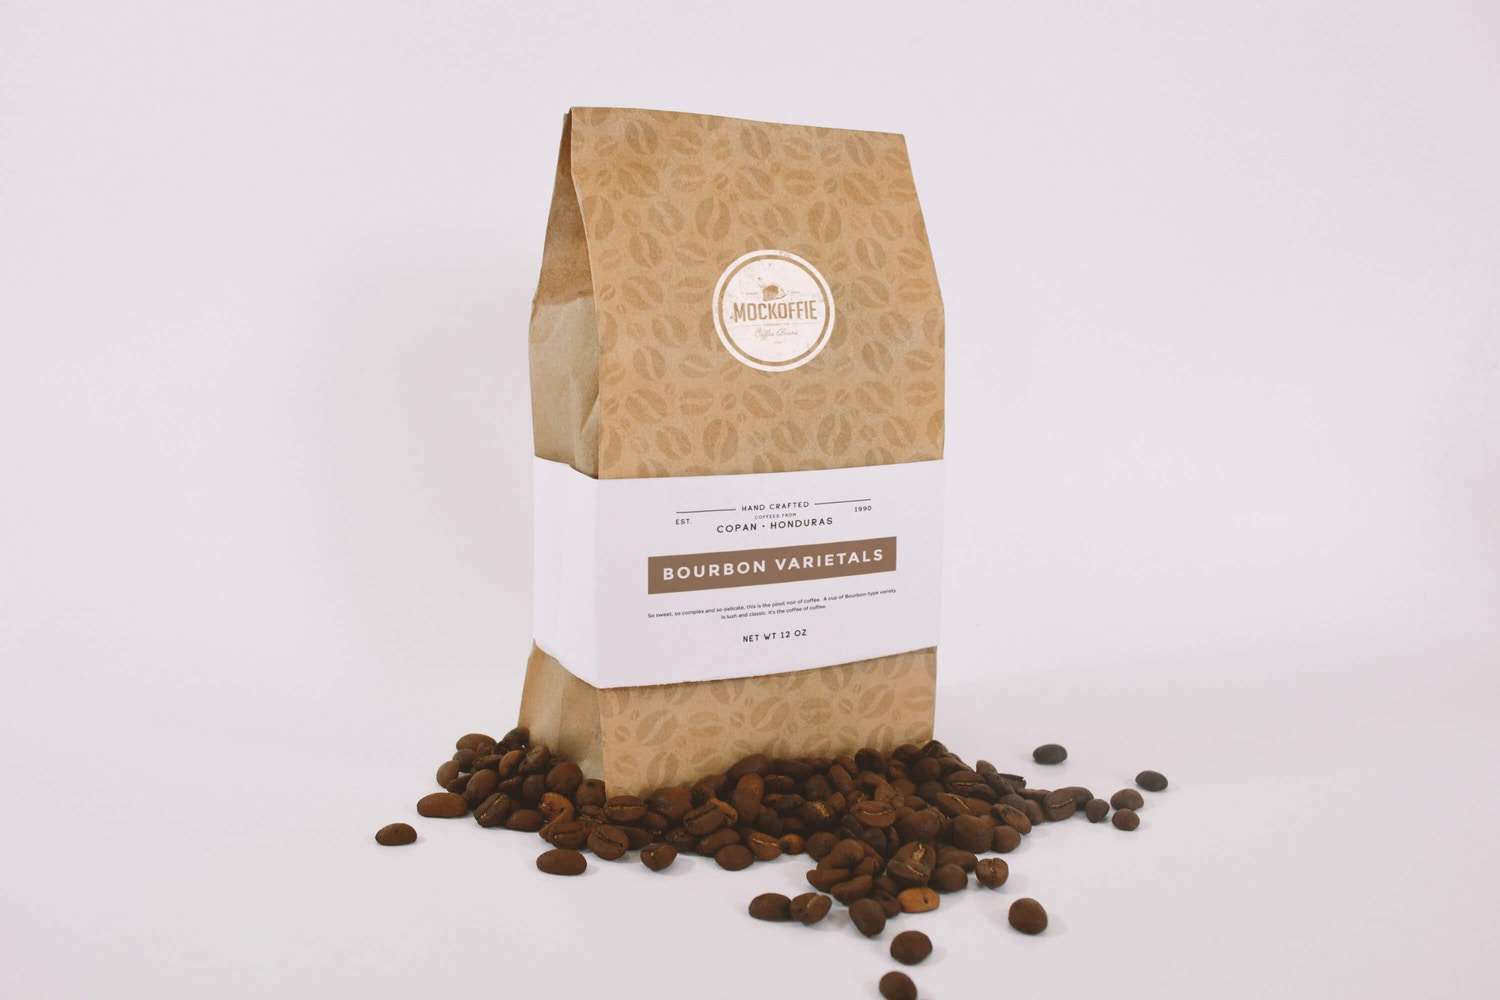 Coffee Bag Mockup Perspective View (1) by Eduardo Mejia on Original Mockups